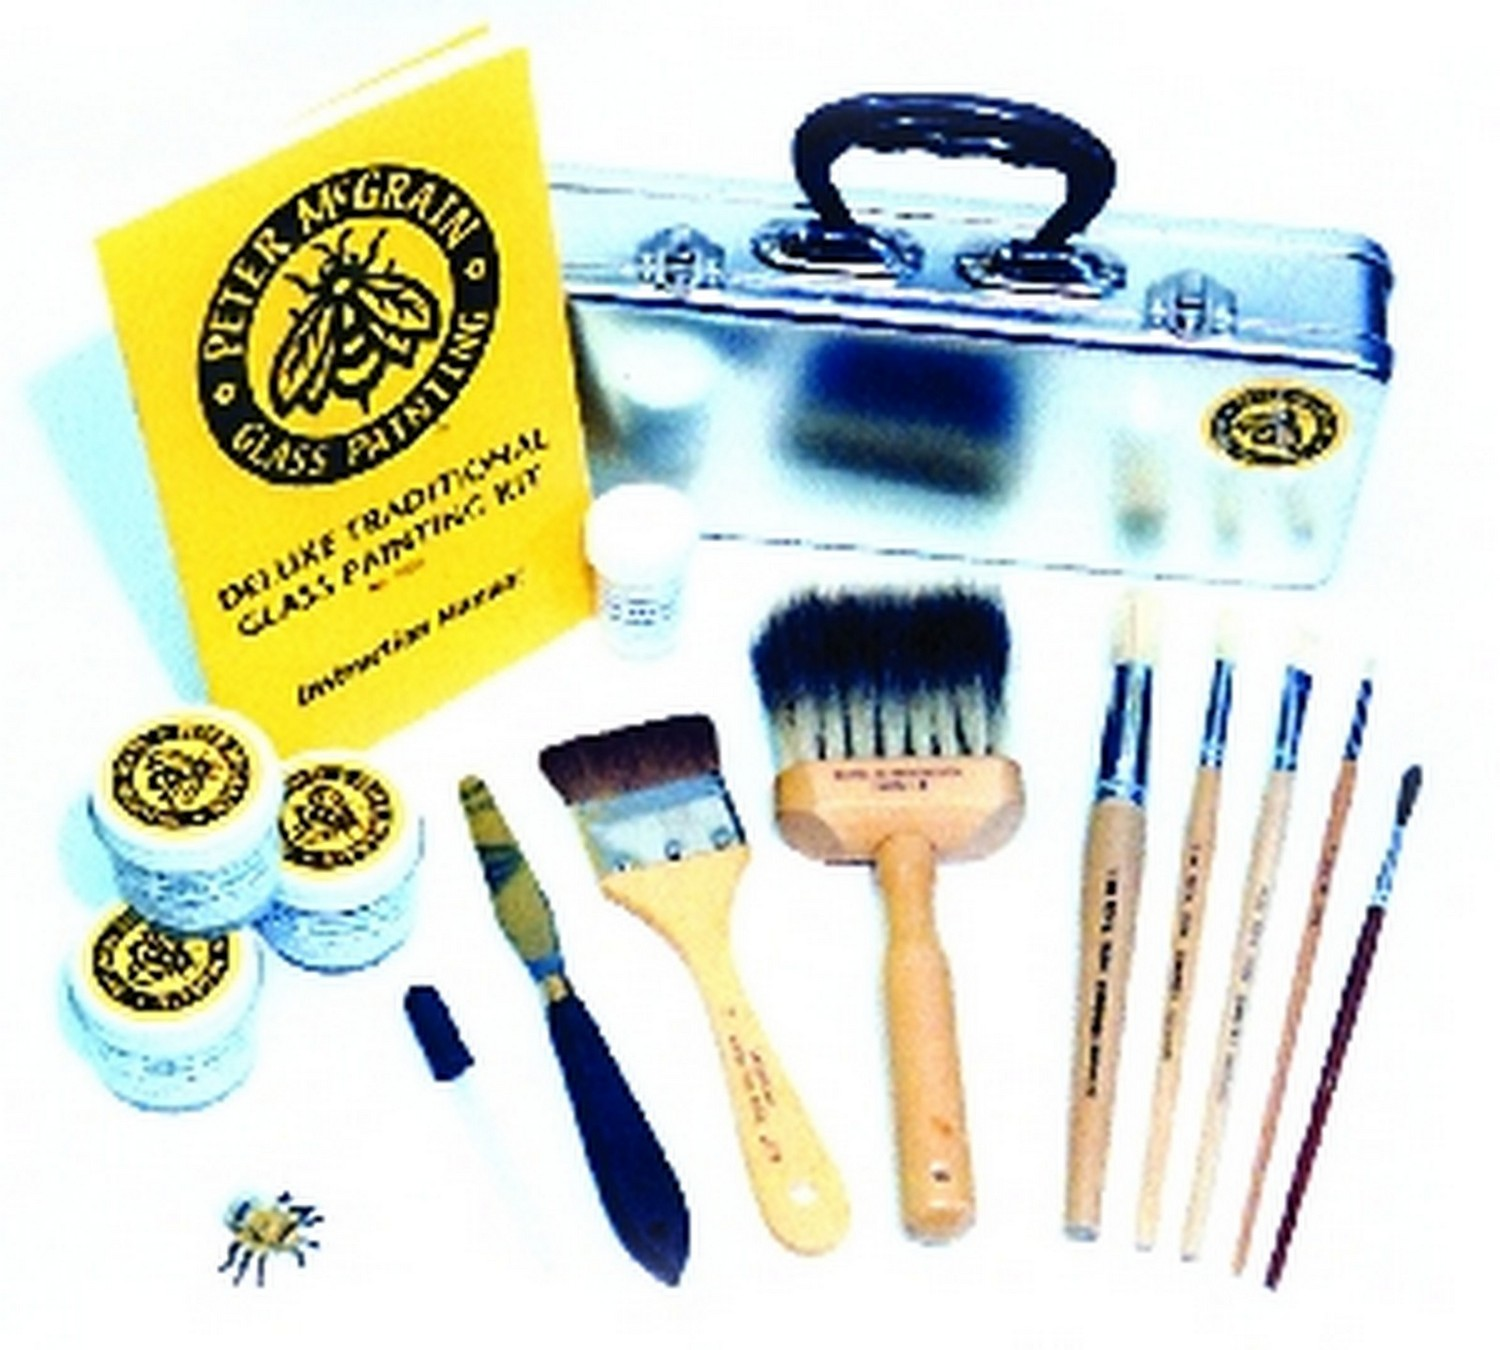 (74019) DELUXE GLASS PAINTING KIT